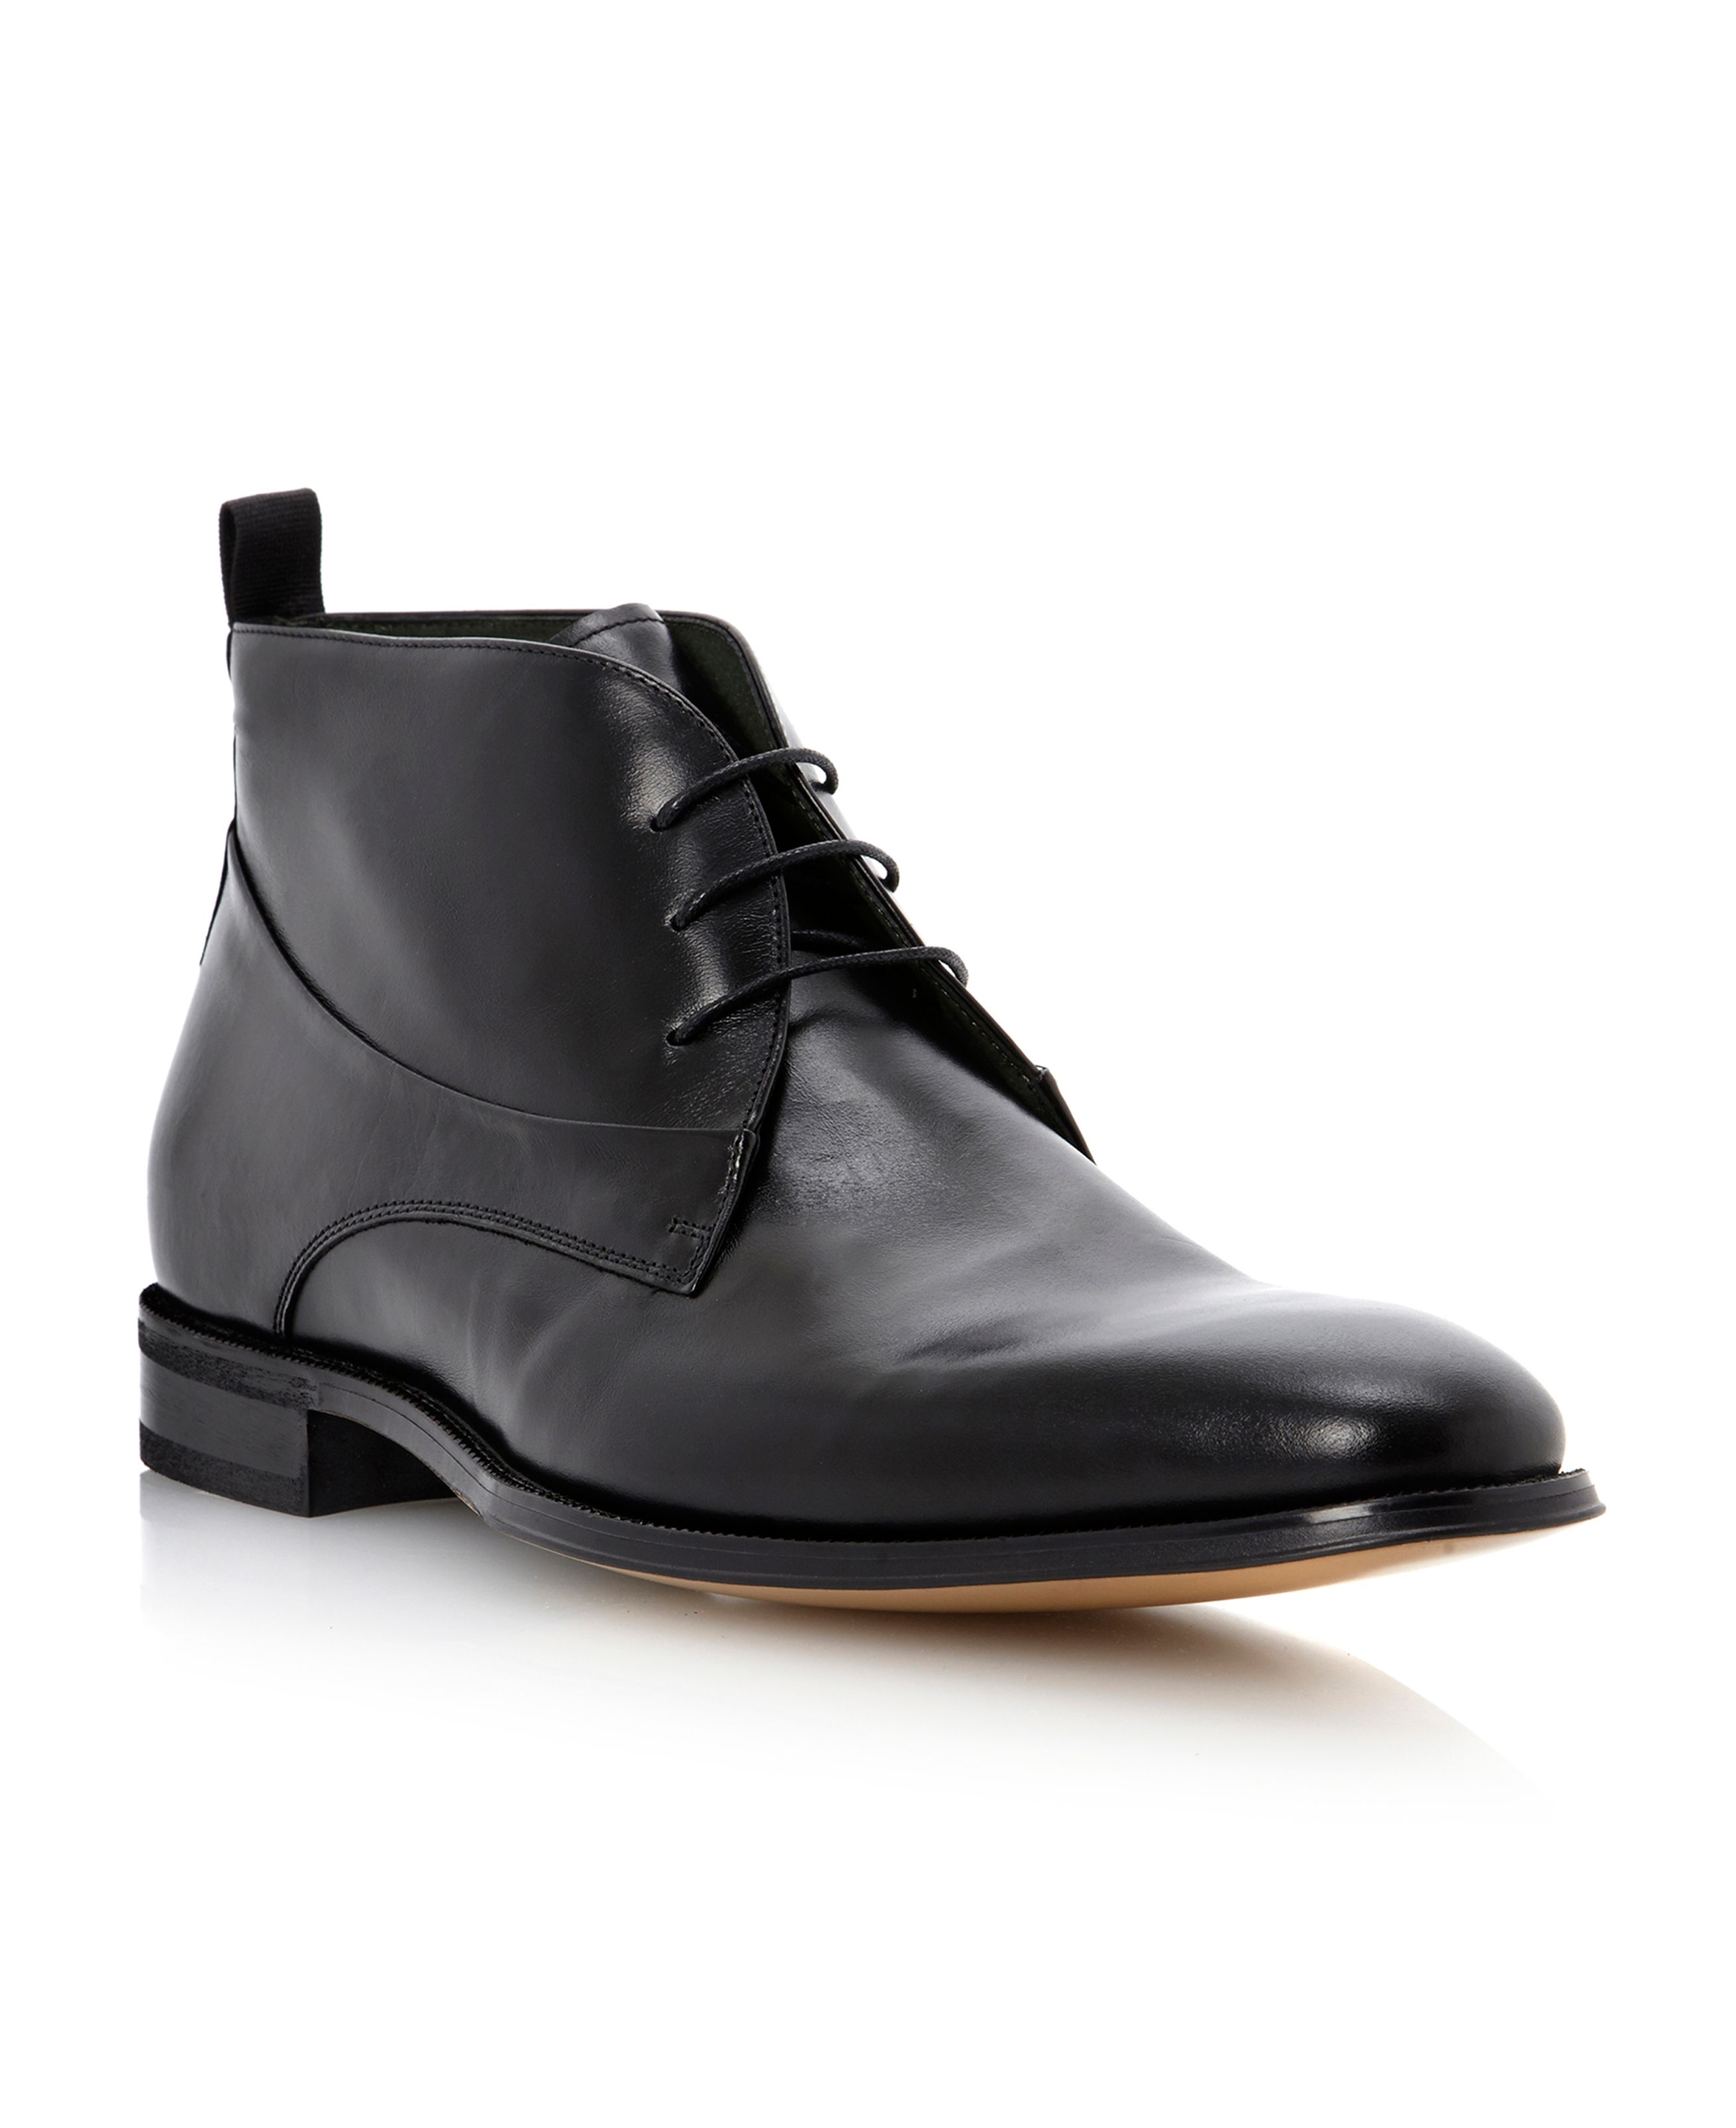 Cartwright lace up leather boot